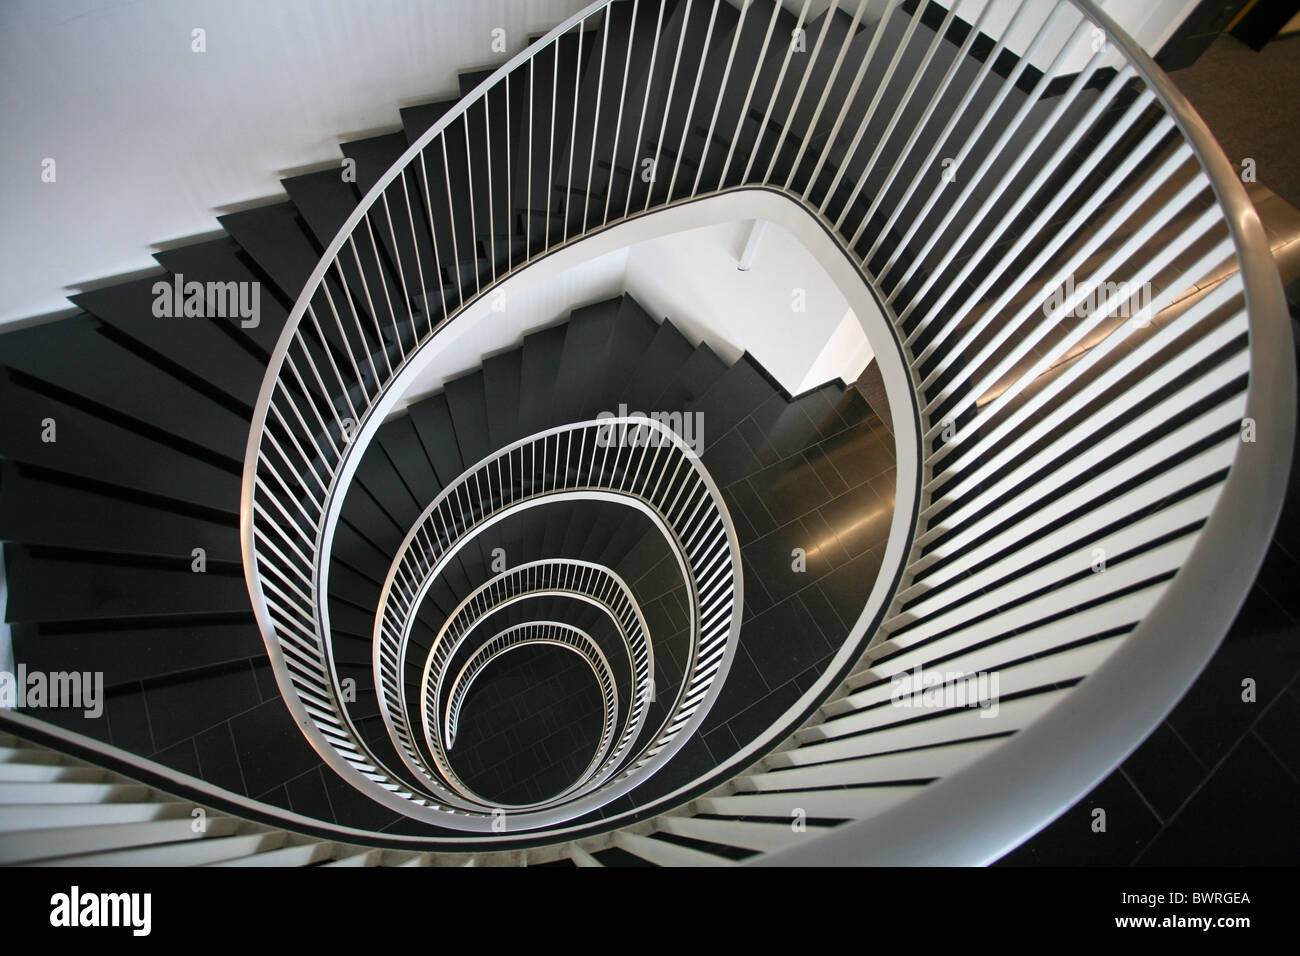 Spiral staircase stairway architecture detail white black Indoor inside building house steps floor floors - Stock Image